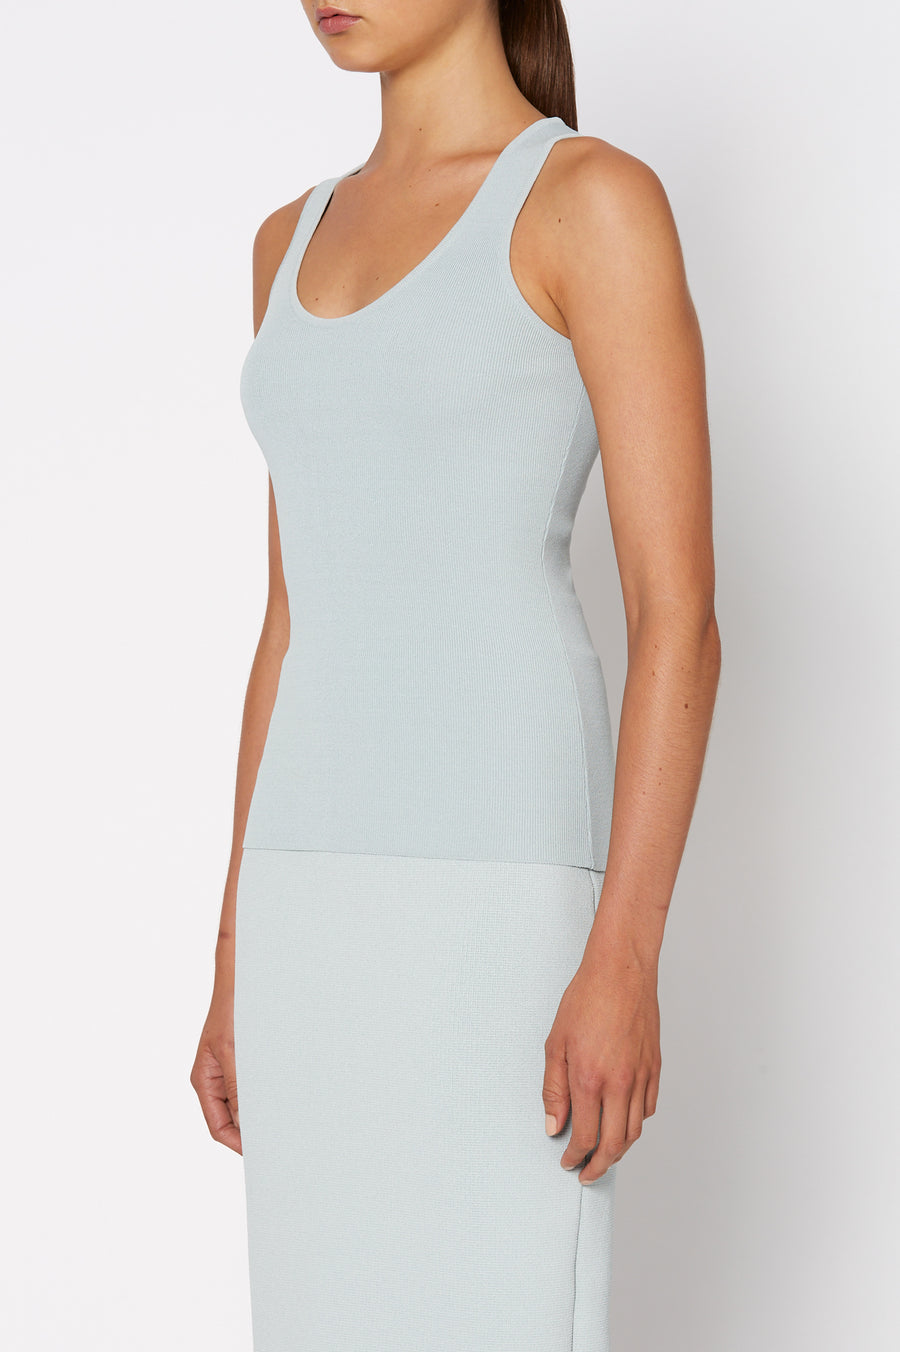 Crepe Knit Singlet, Scoop Neck, Slim Fit. Color Blue Argento